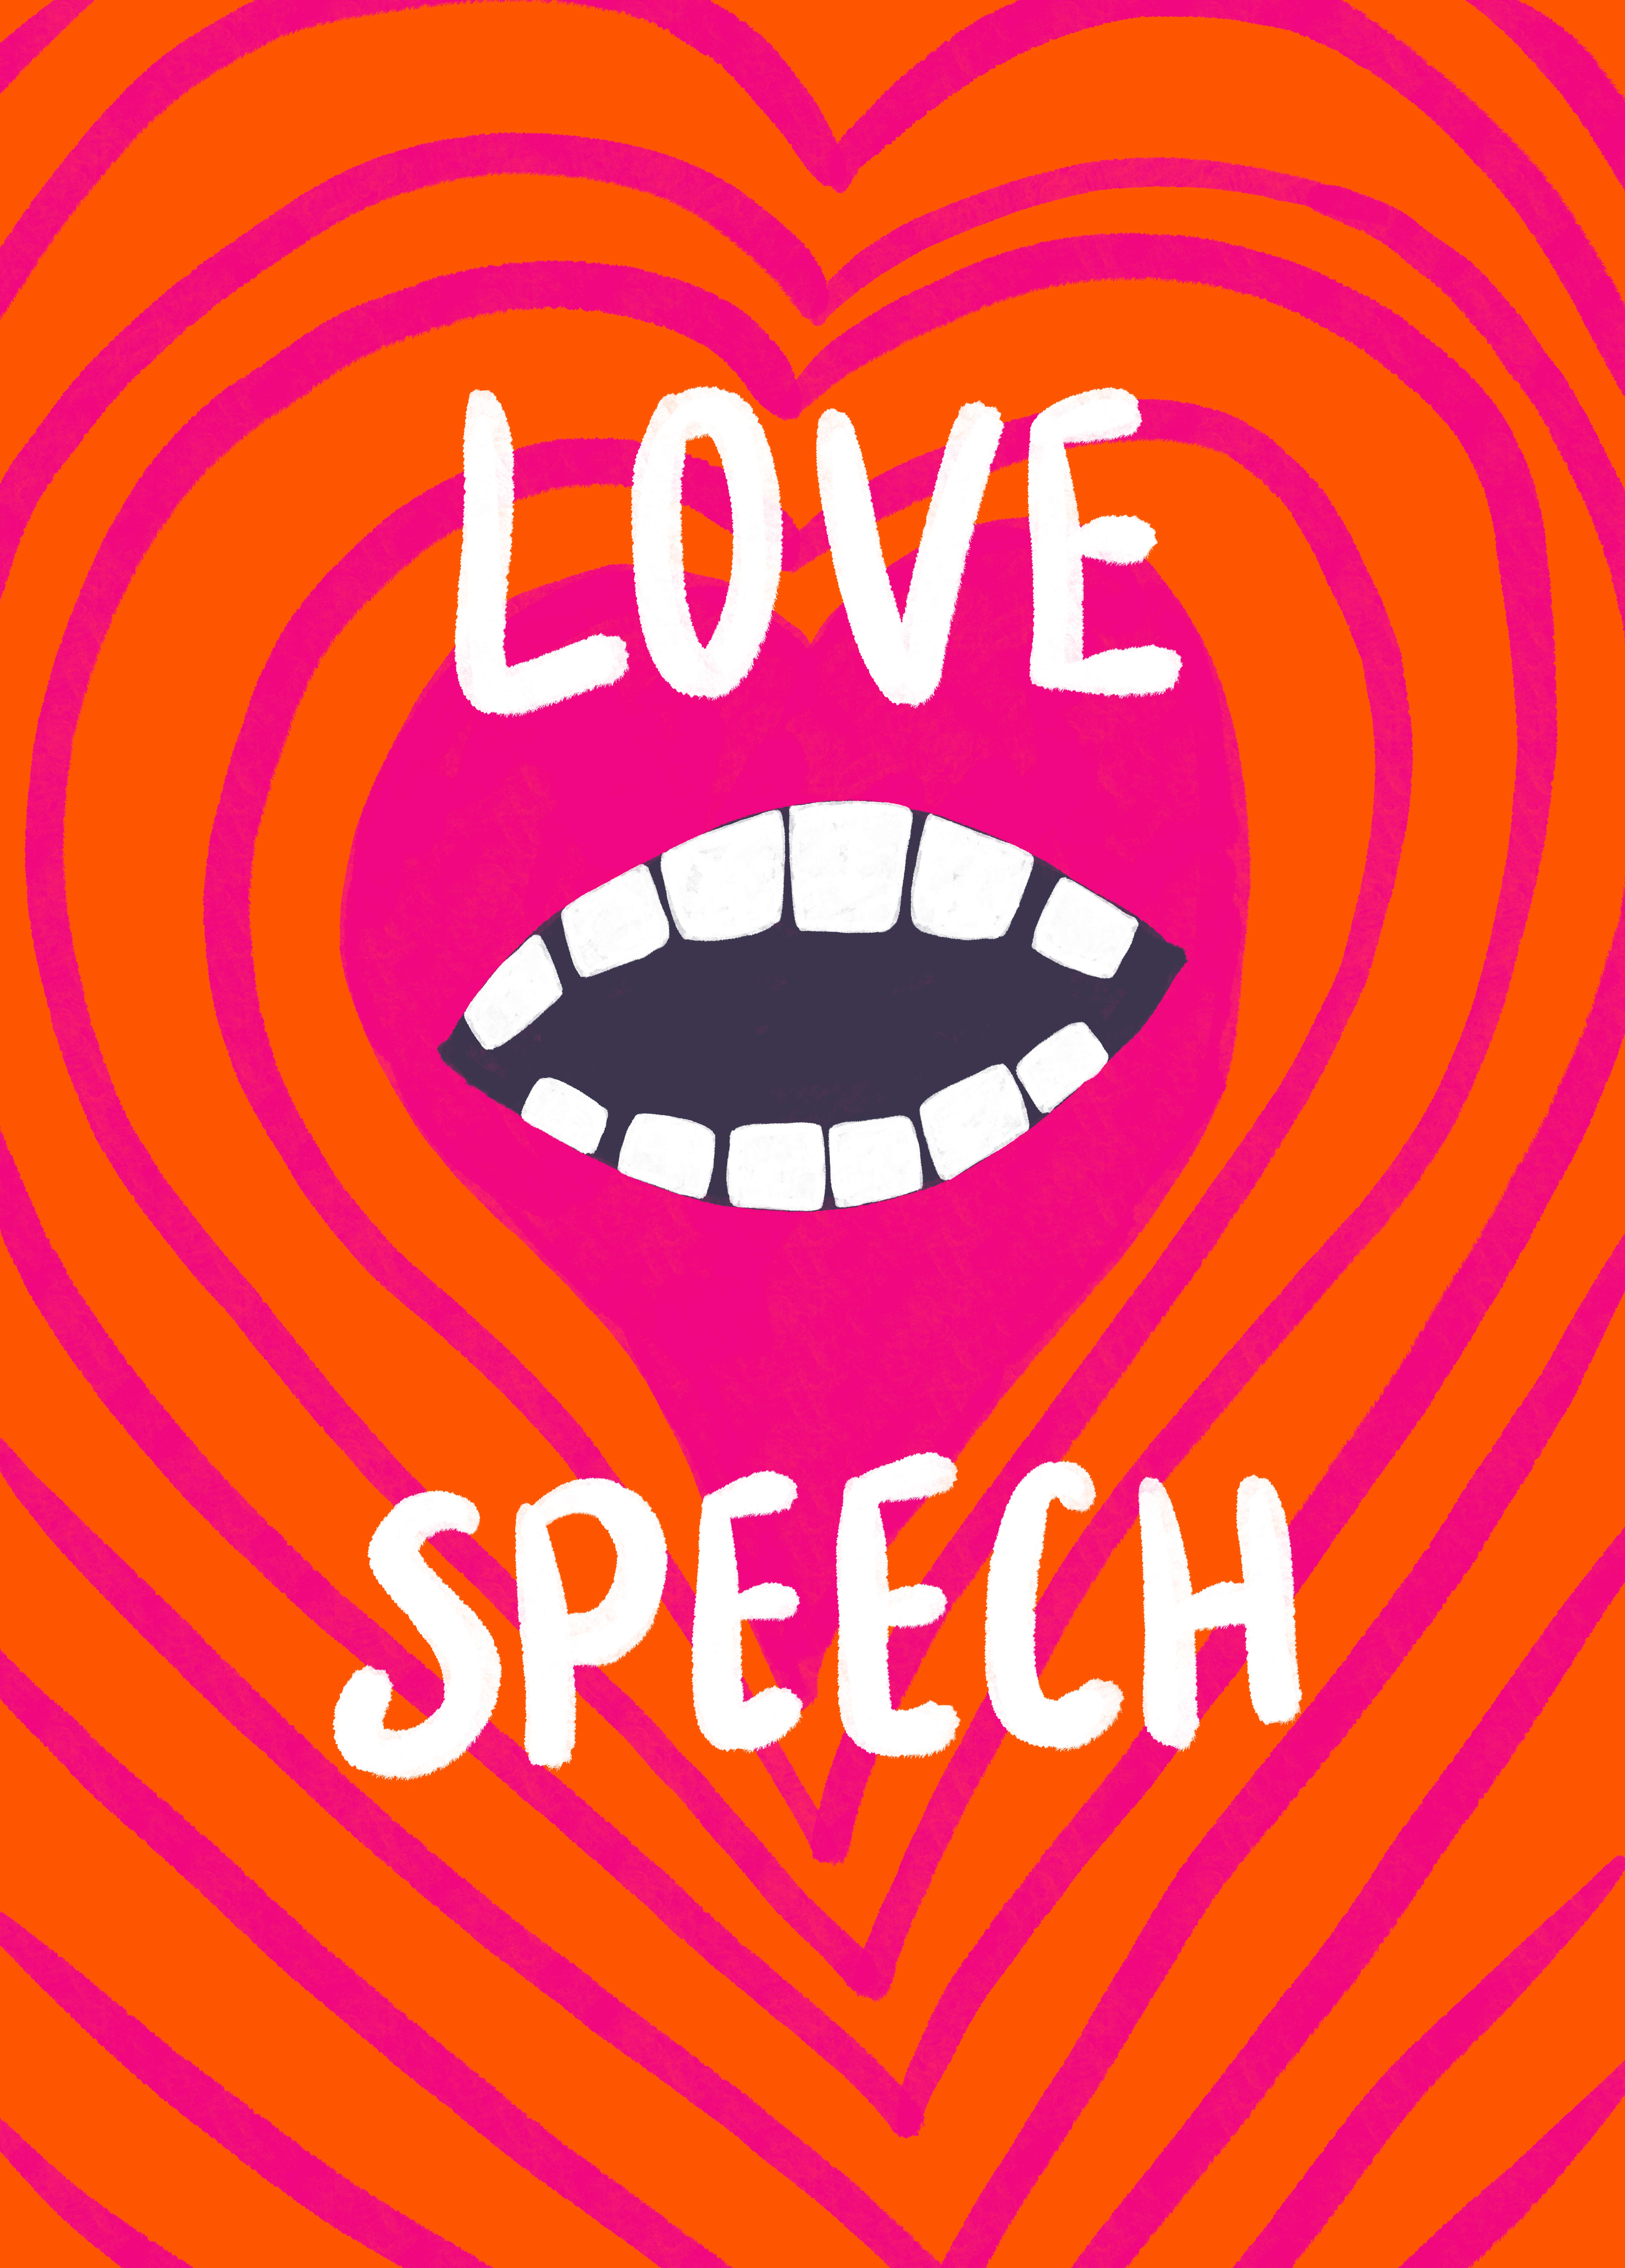 Love Speech (series 1/2) main image